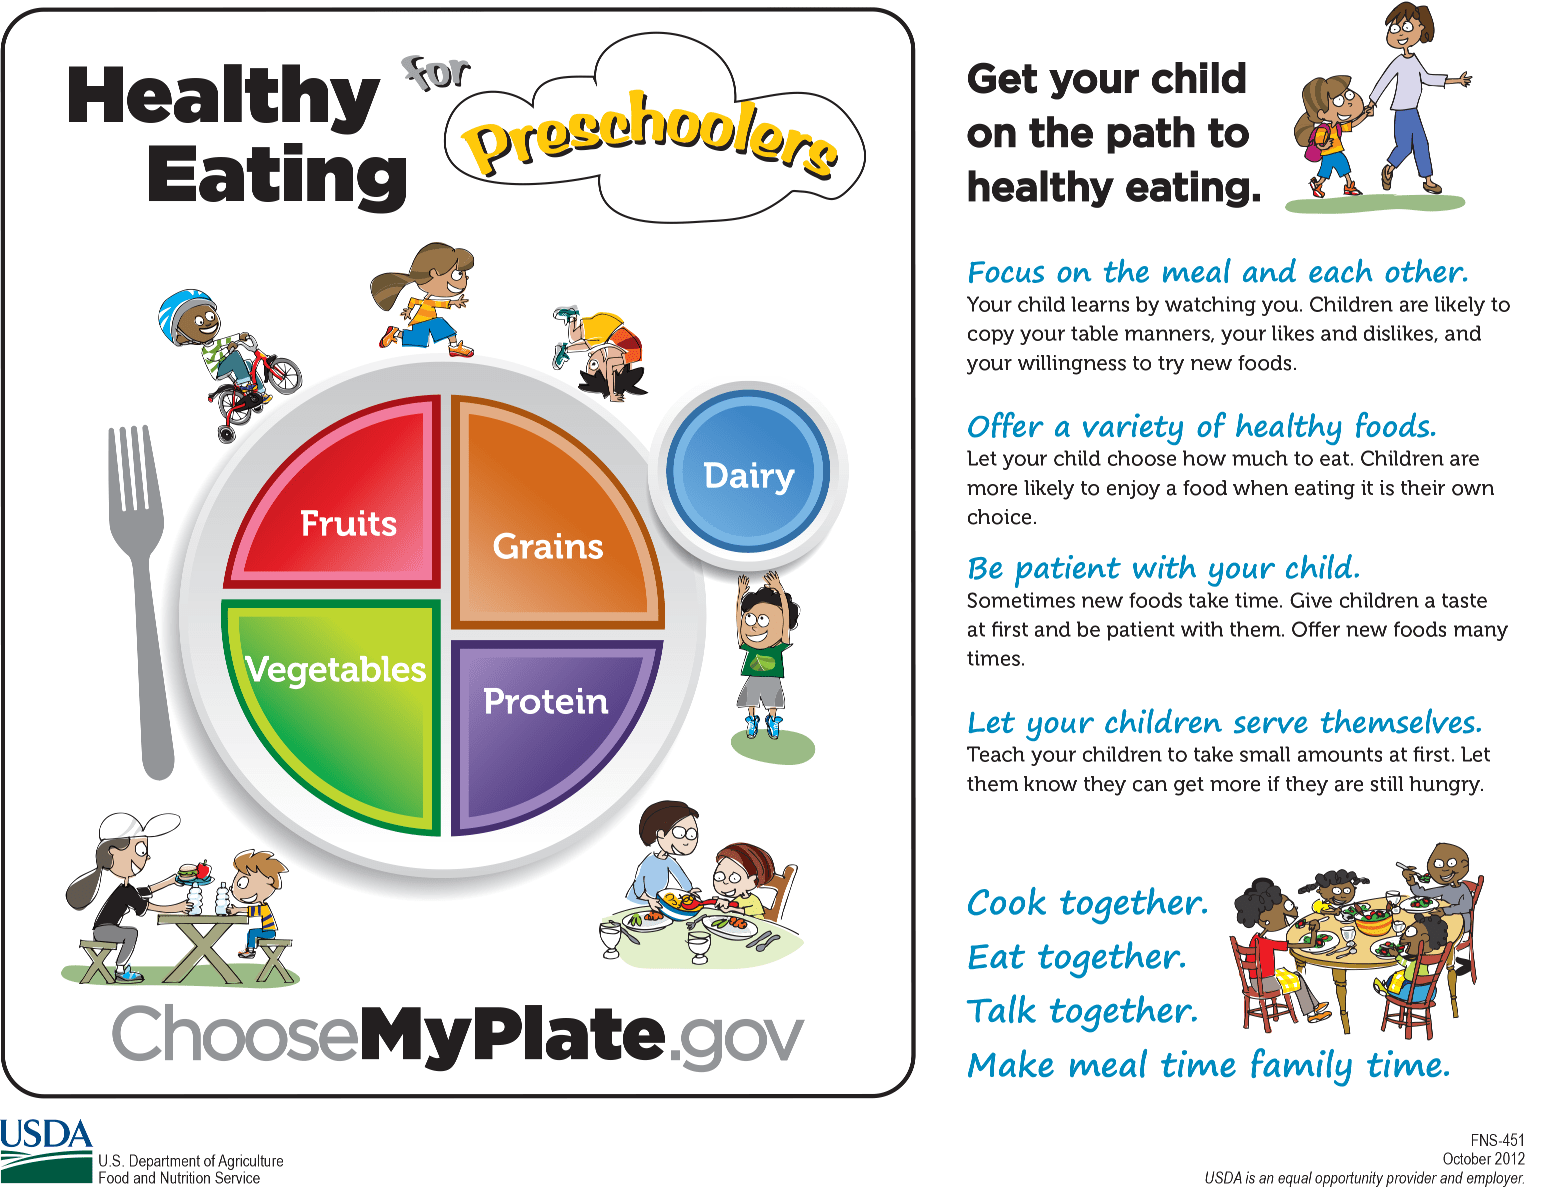 Creative Learning Preschool Inc Healthy Eating For Preschoolers